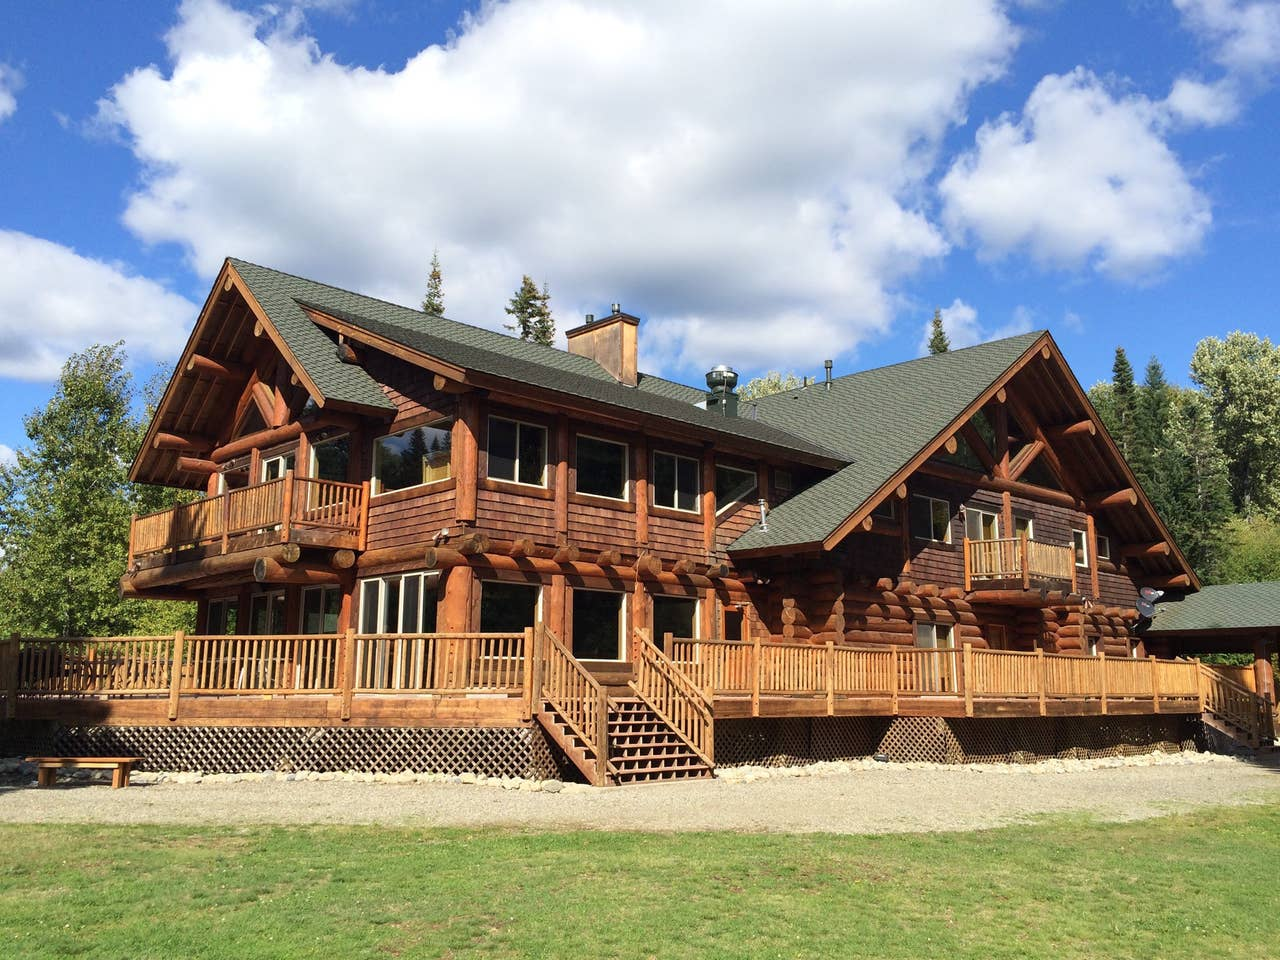 Family cabin Airbnb for wedding venue